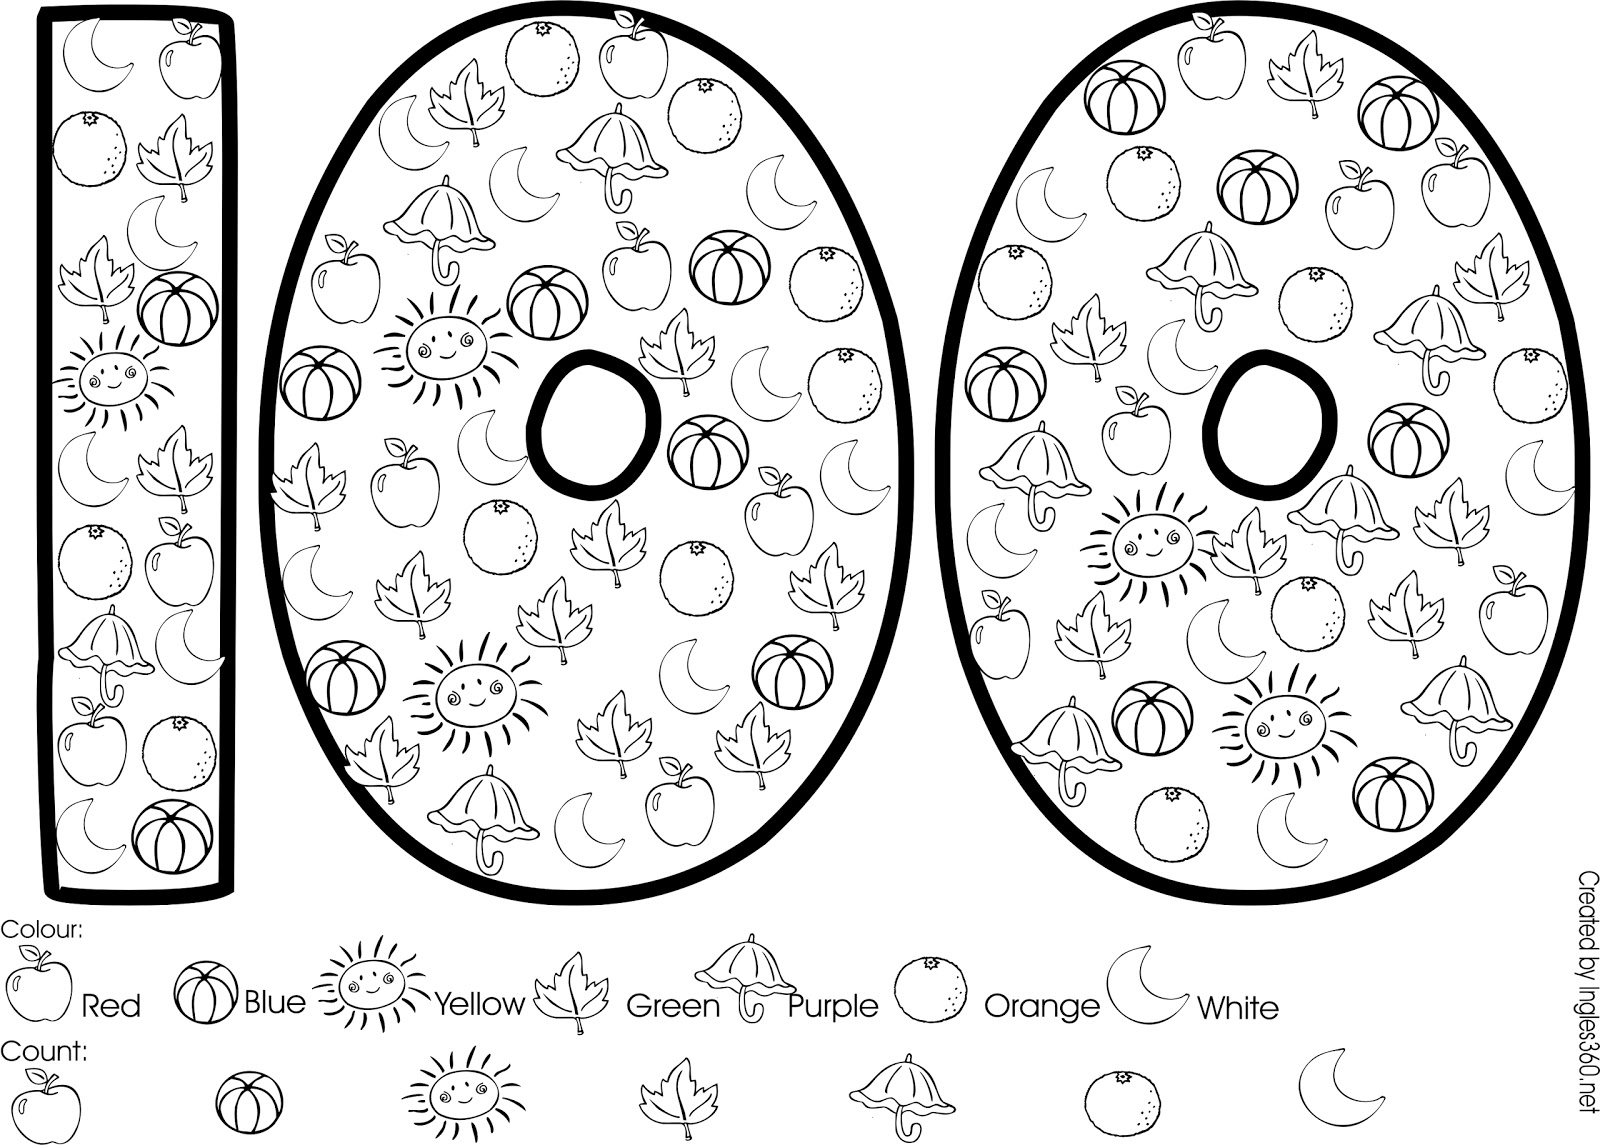 100 days of school printable coloring pages photo - 1